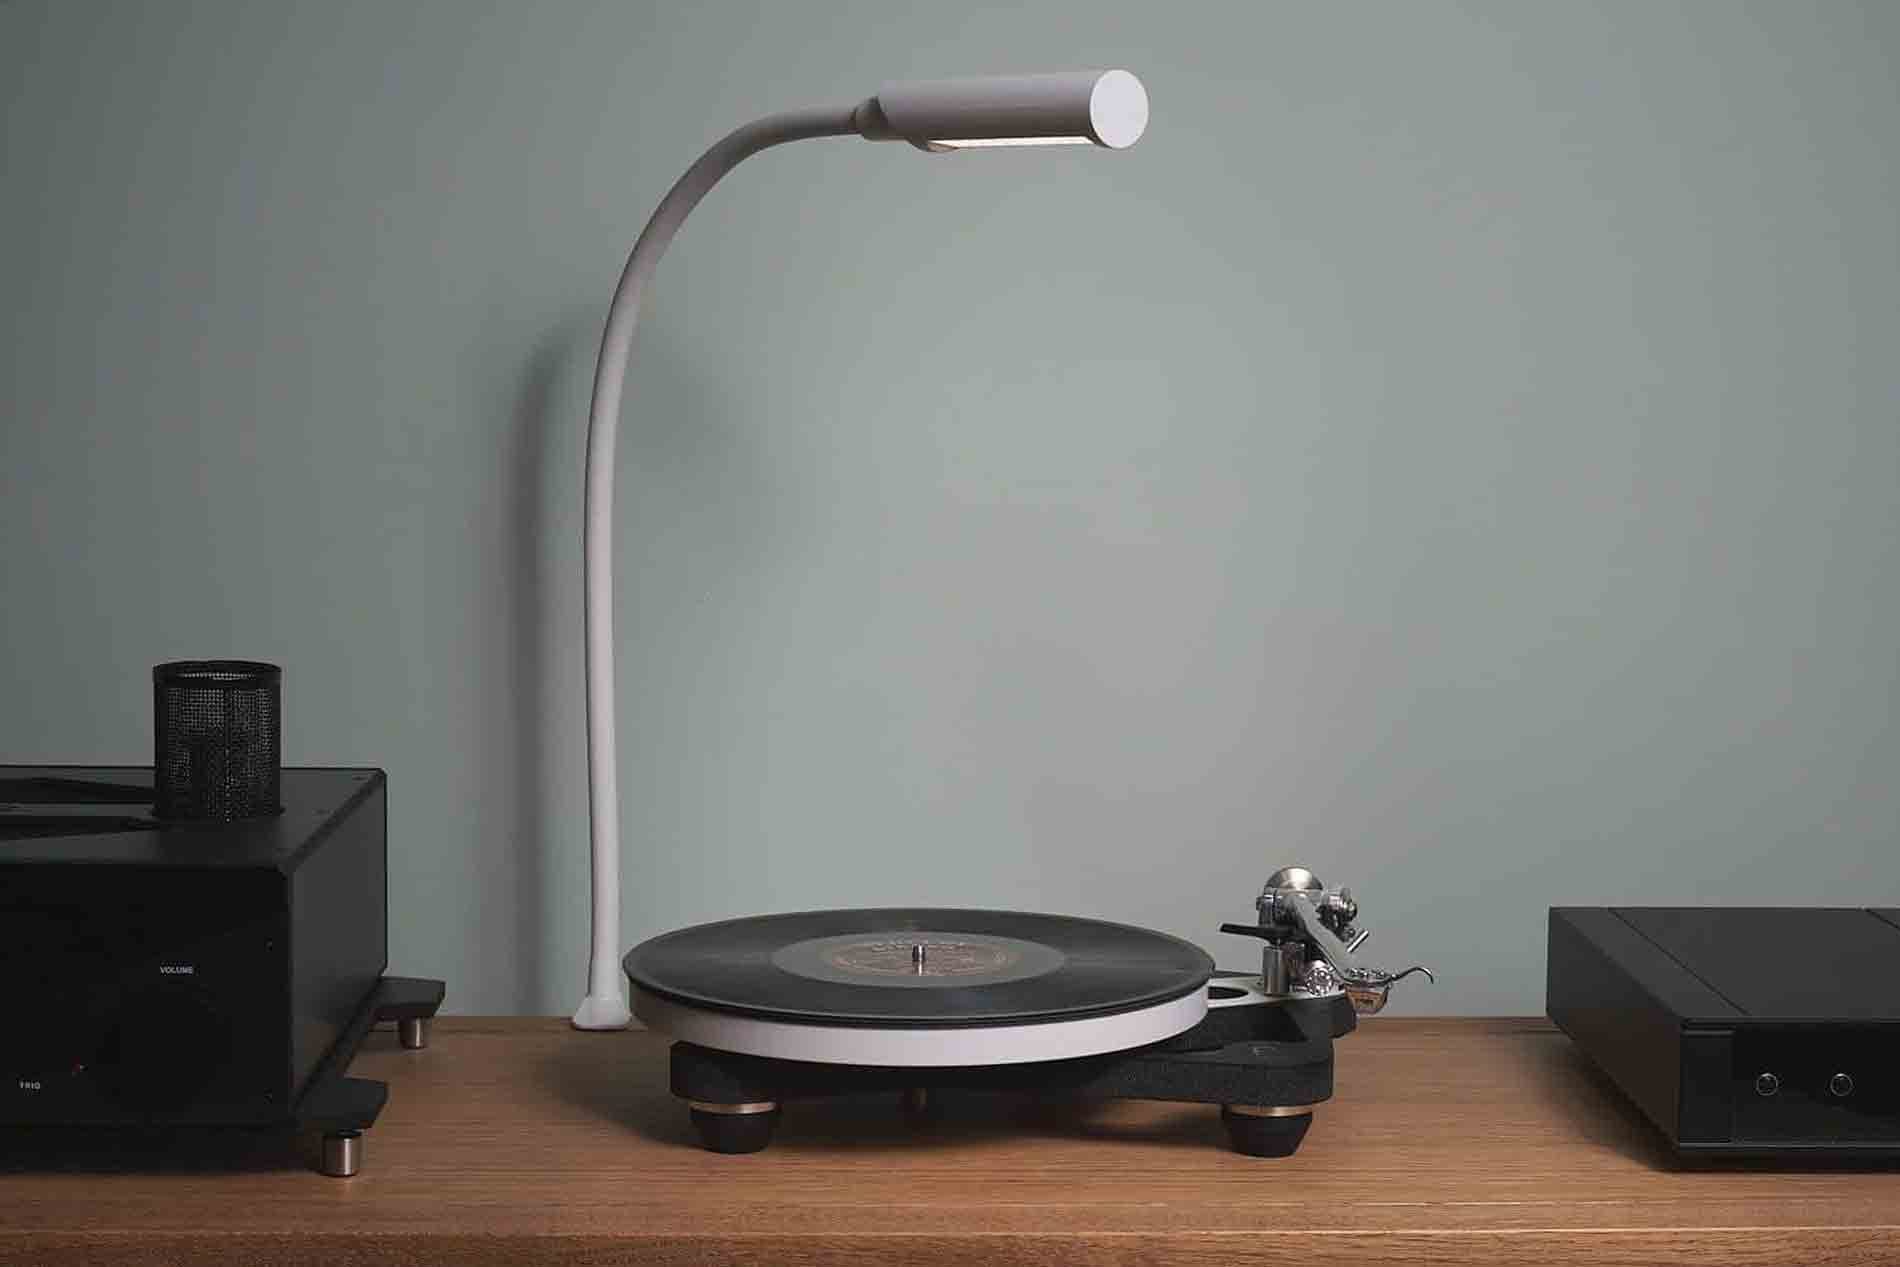 Reliable Uberlight Task Light Review: A Must for Vinyl Record Fans